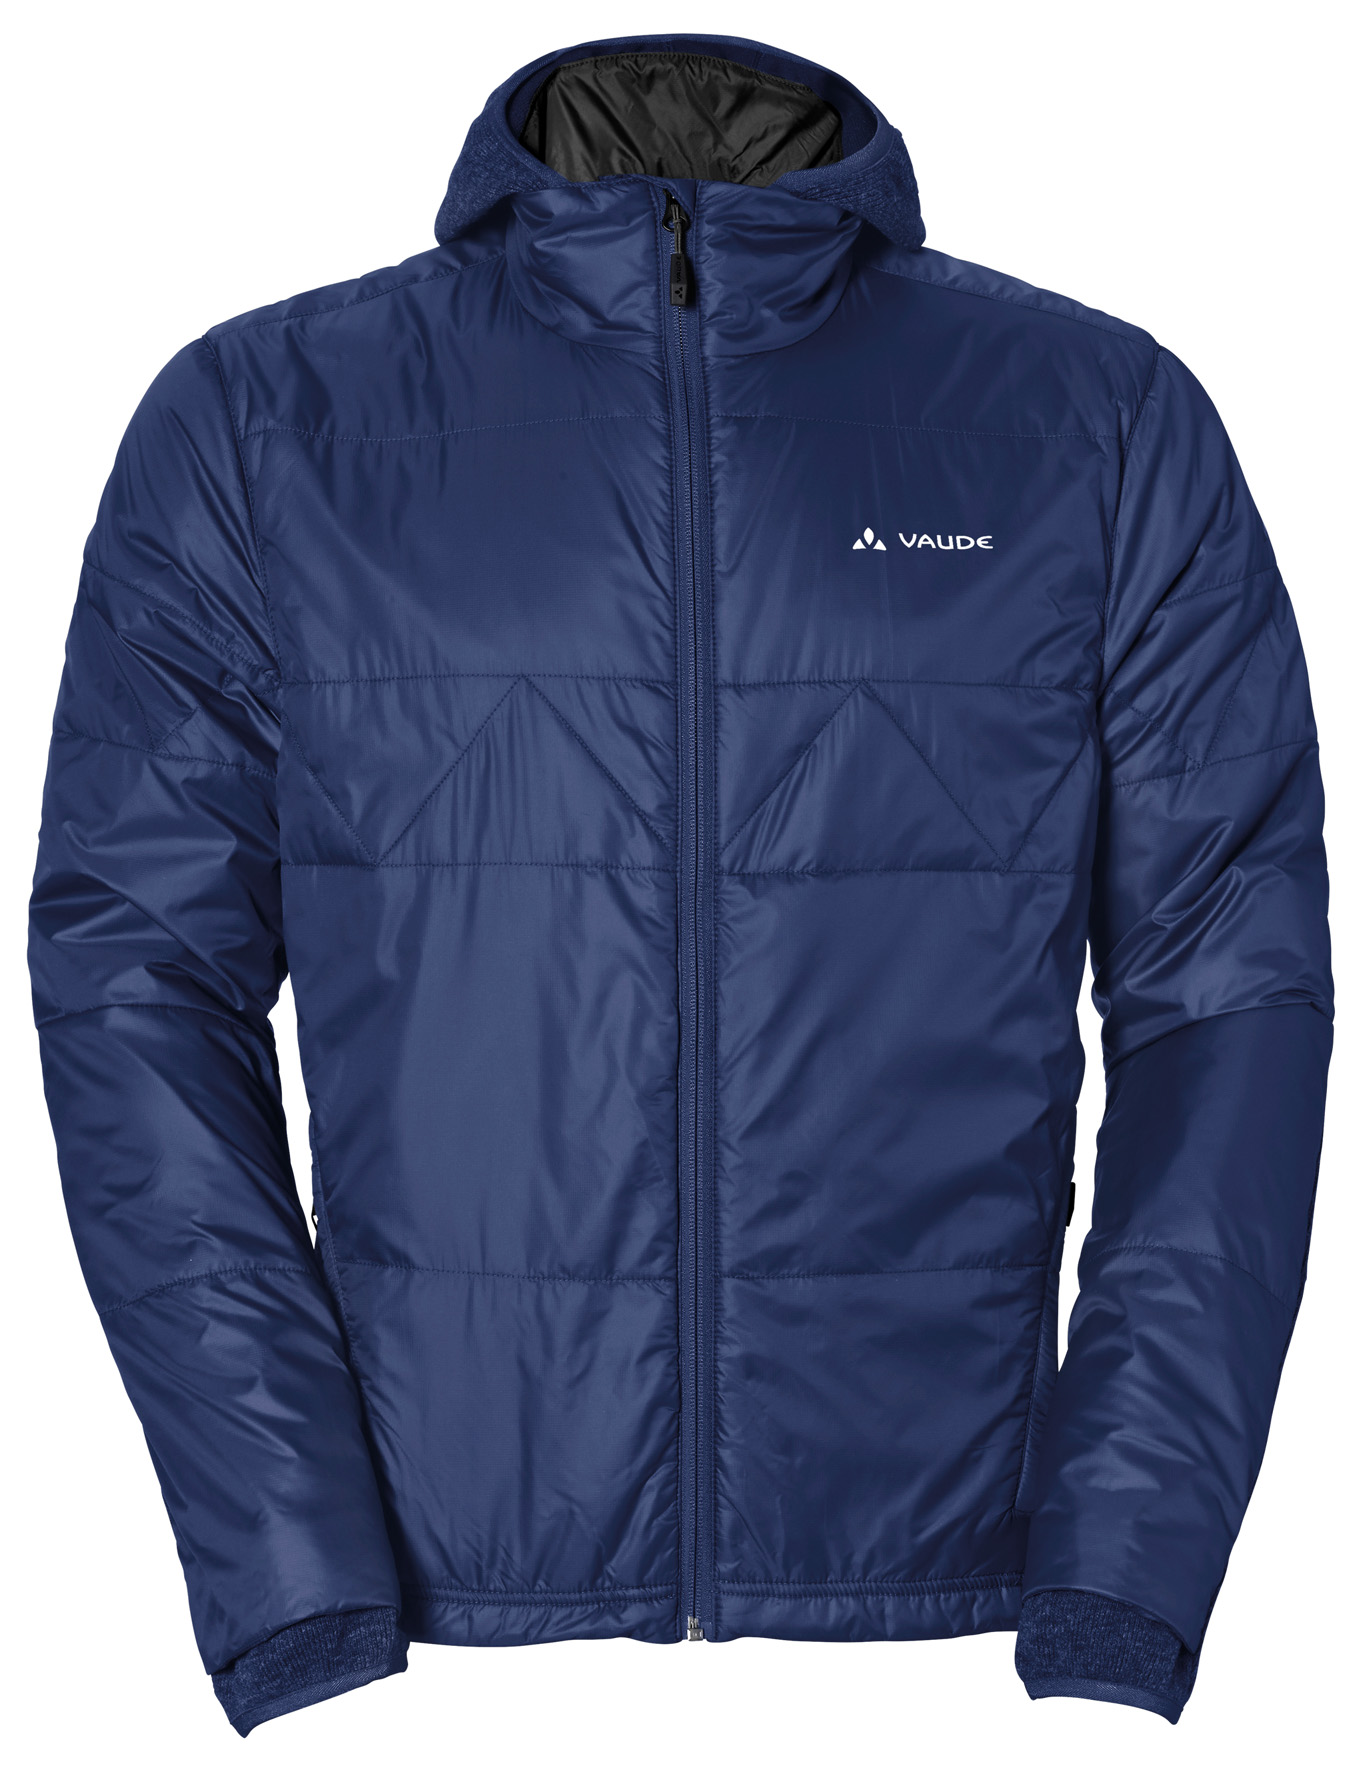 VAUDE Men´s Tirano Padded Jacket sailor blue Größe S - schneider-sports